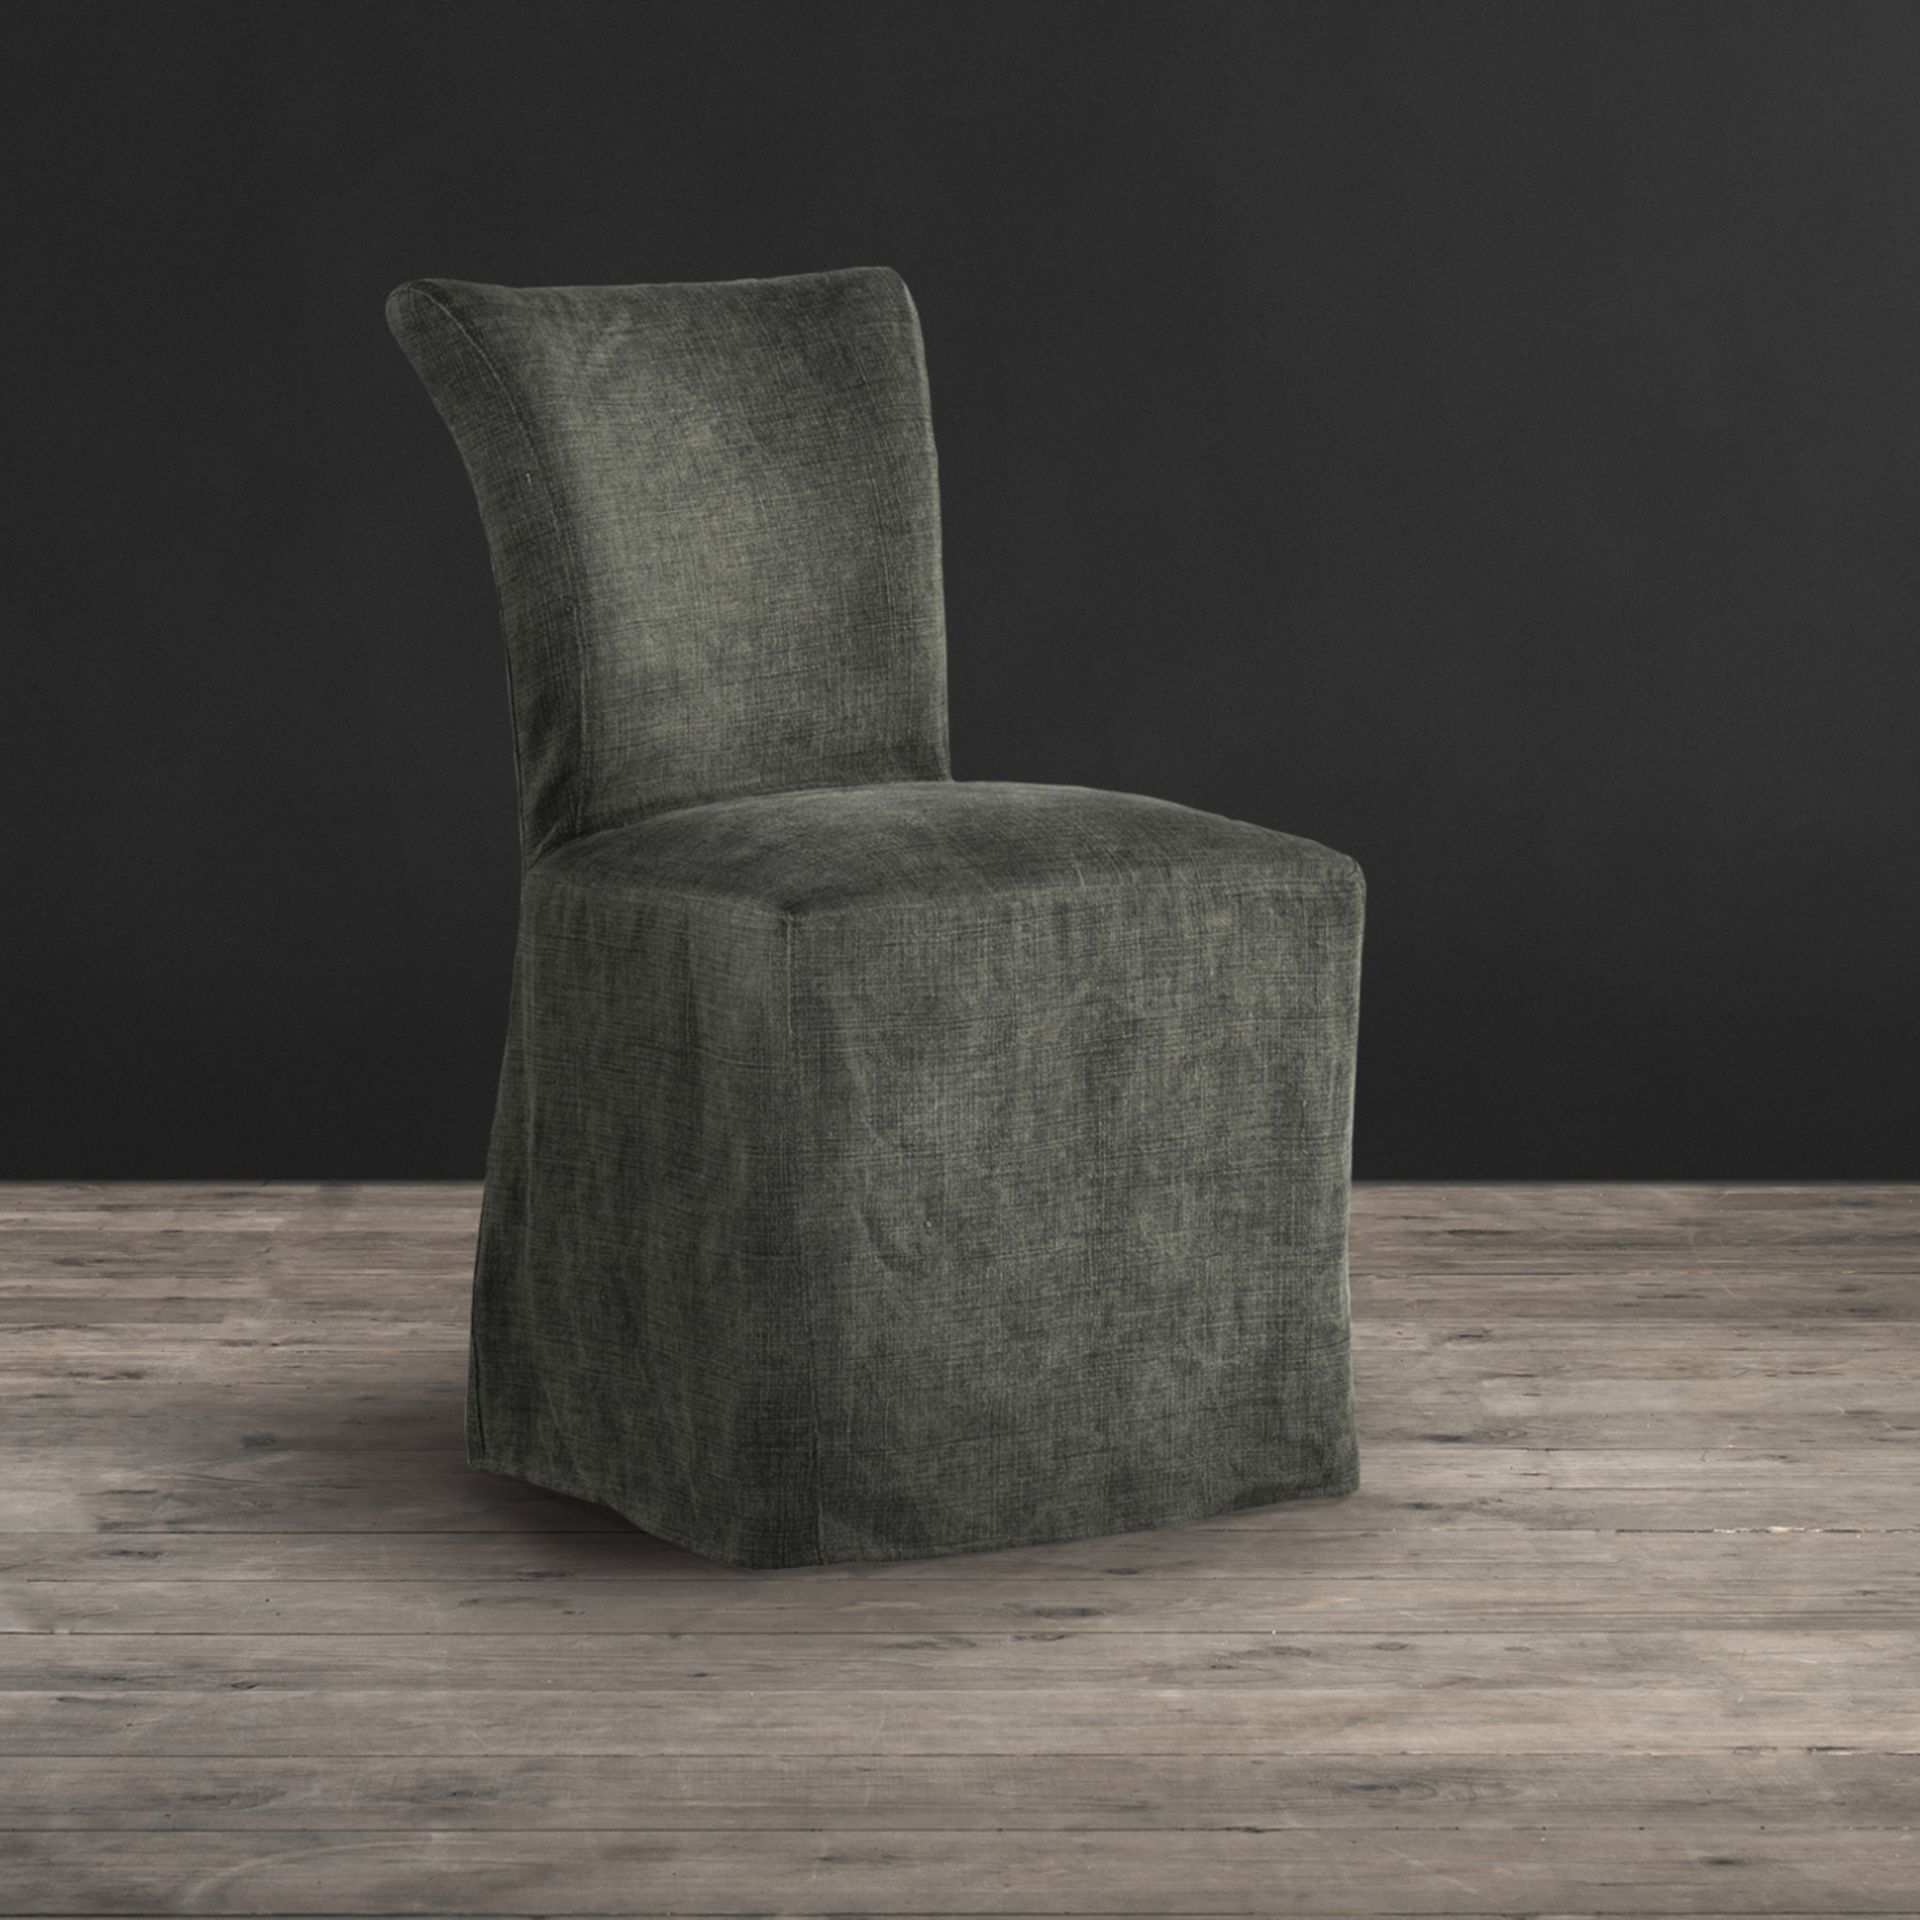 Lot 23 - Mimi Chair Scuff Linen Bone With Loose Cover We've Given Our Best-Selling Mimi Dining Chair A